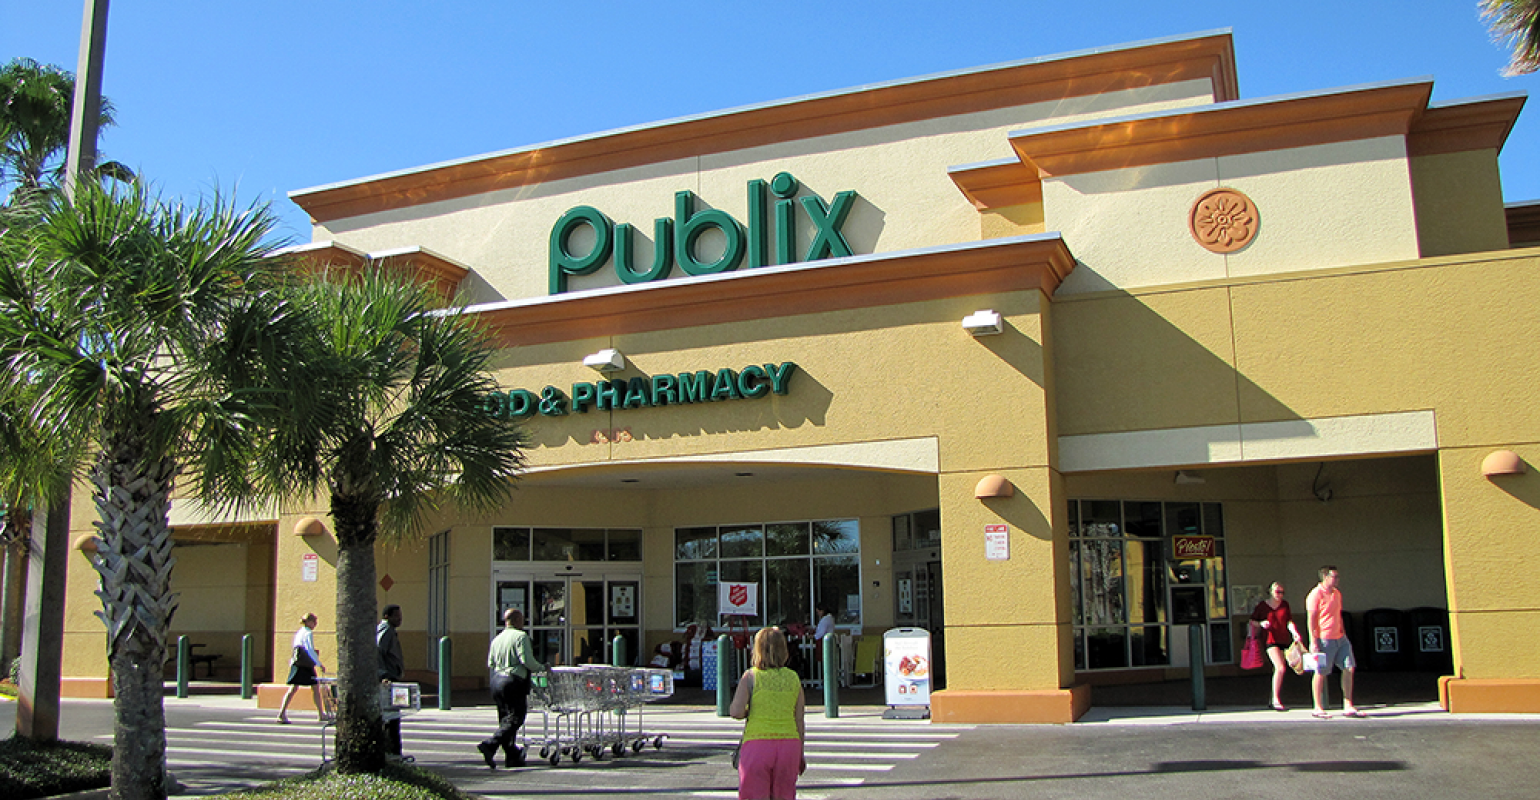 Publix expands Instacart delivery in central Florida